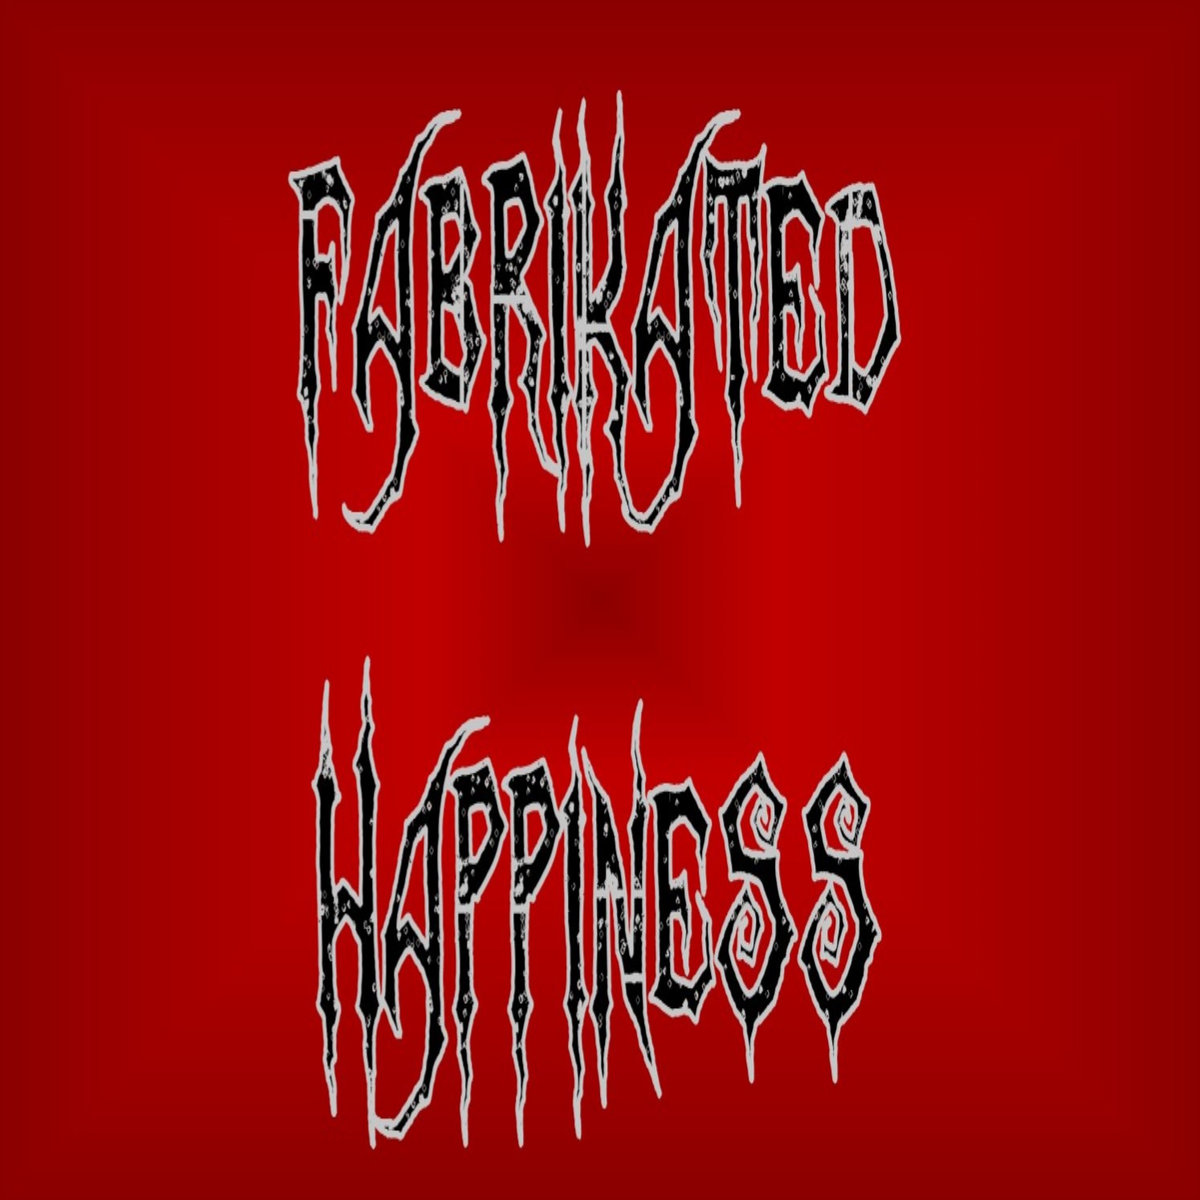 Fabrikated Happiness by Man Made Horror